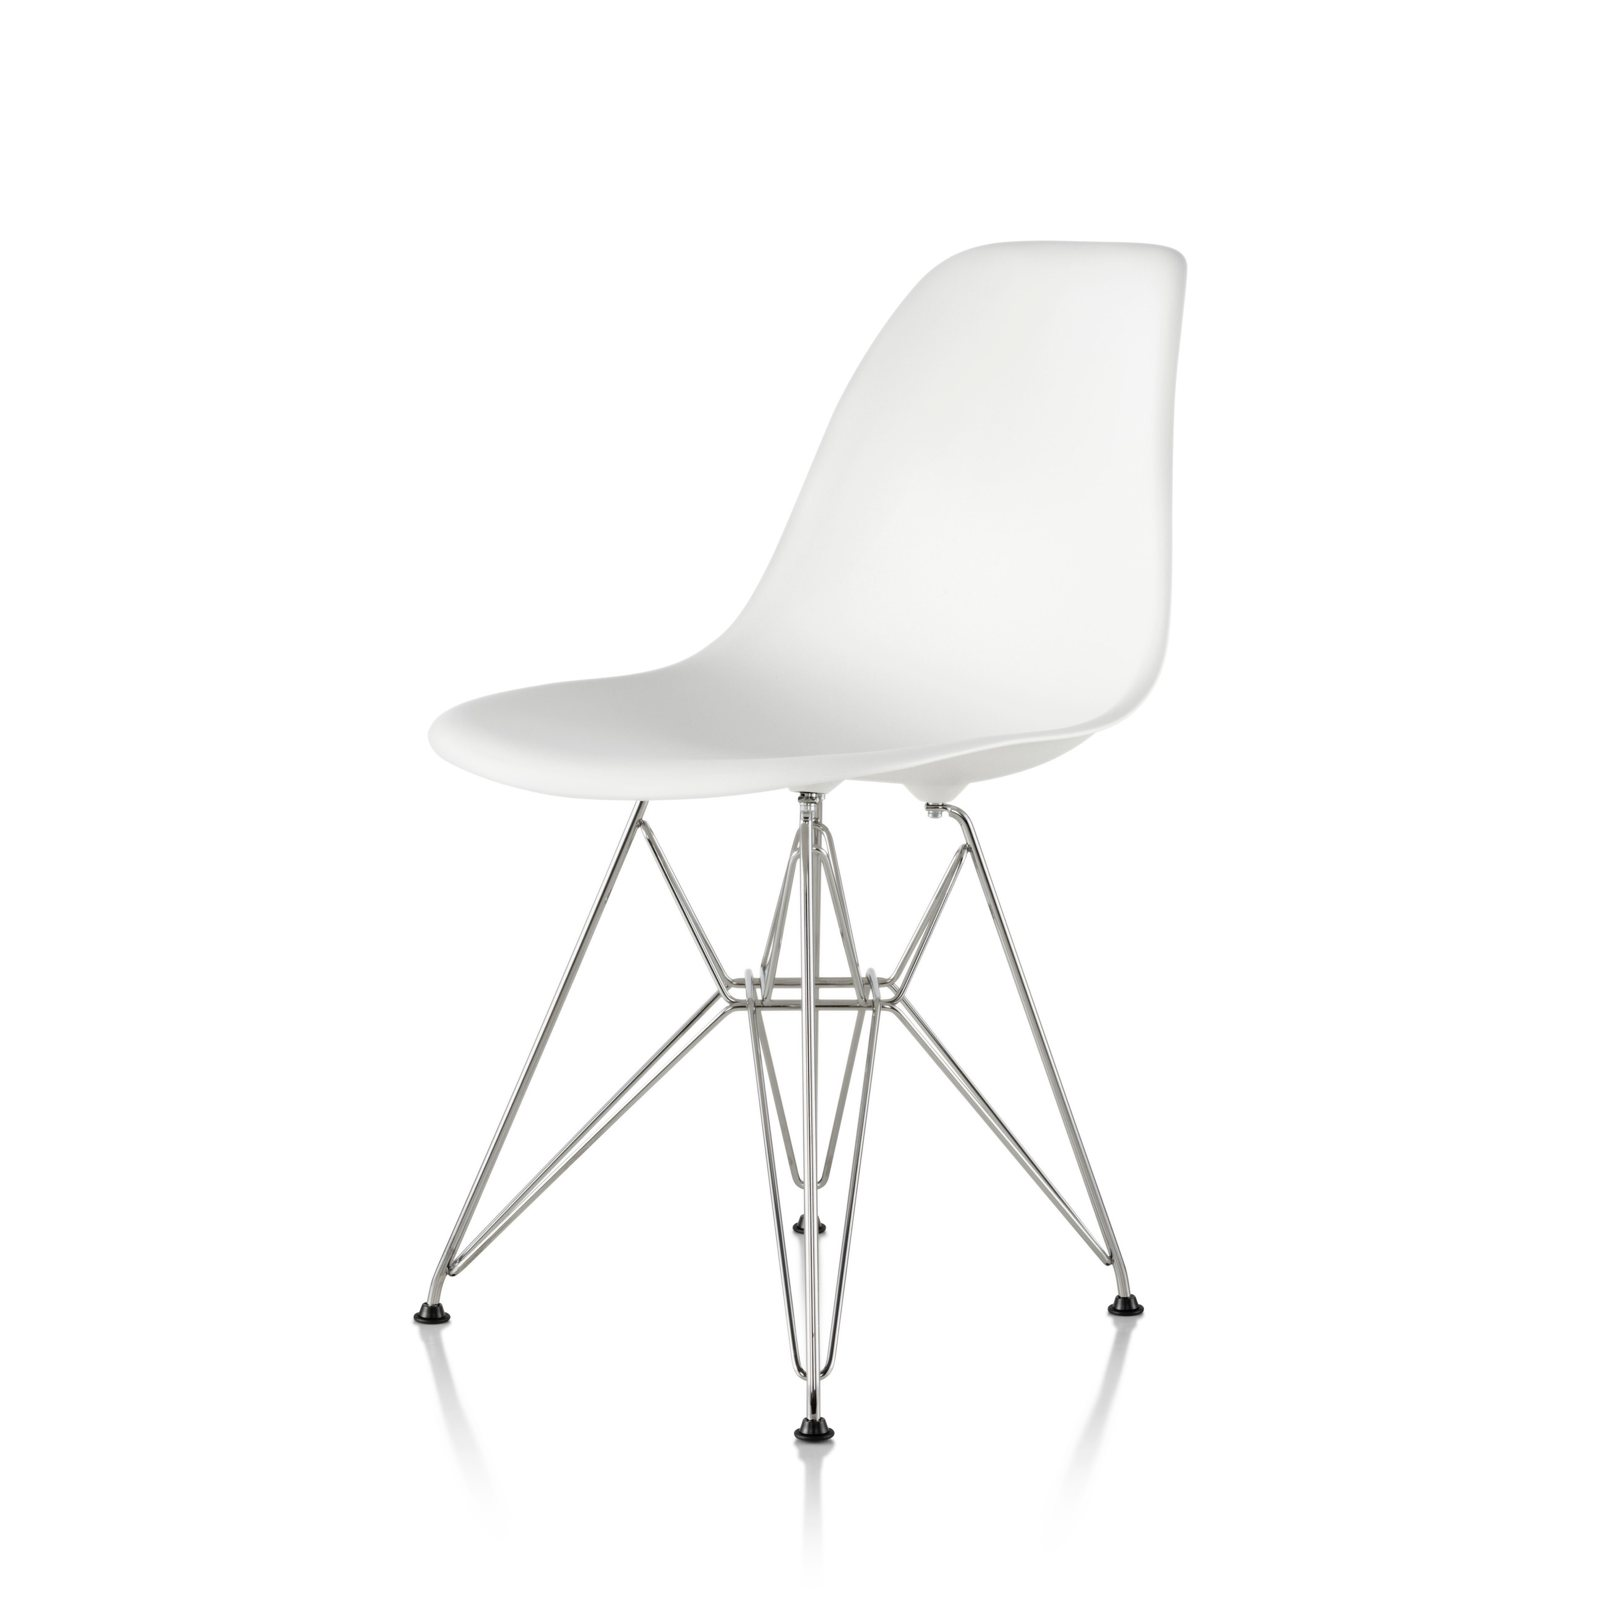 Eames Molded Plastic Side Chair Wire Base, White Seat And Back, Trivalent  Chrome Base